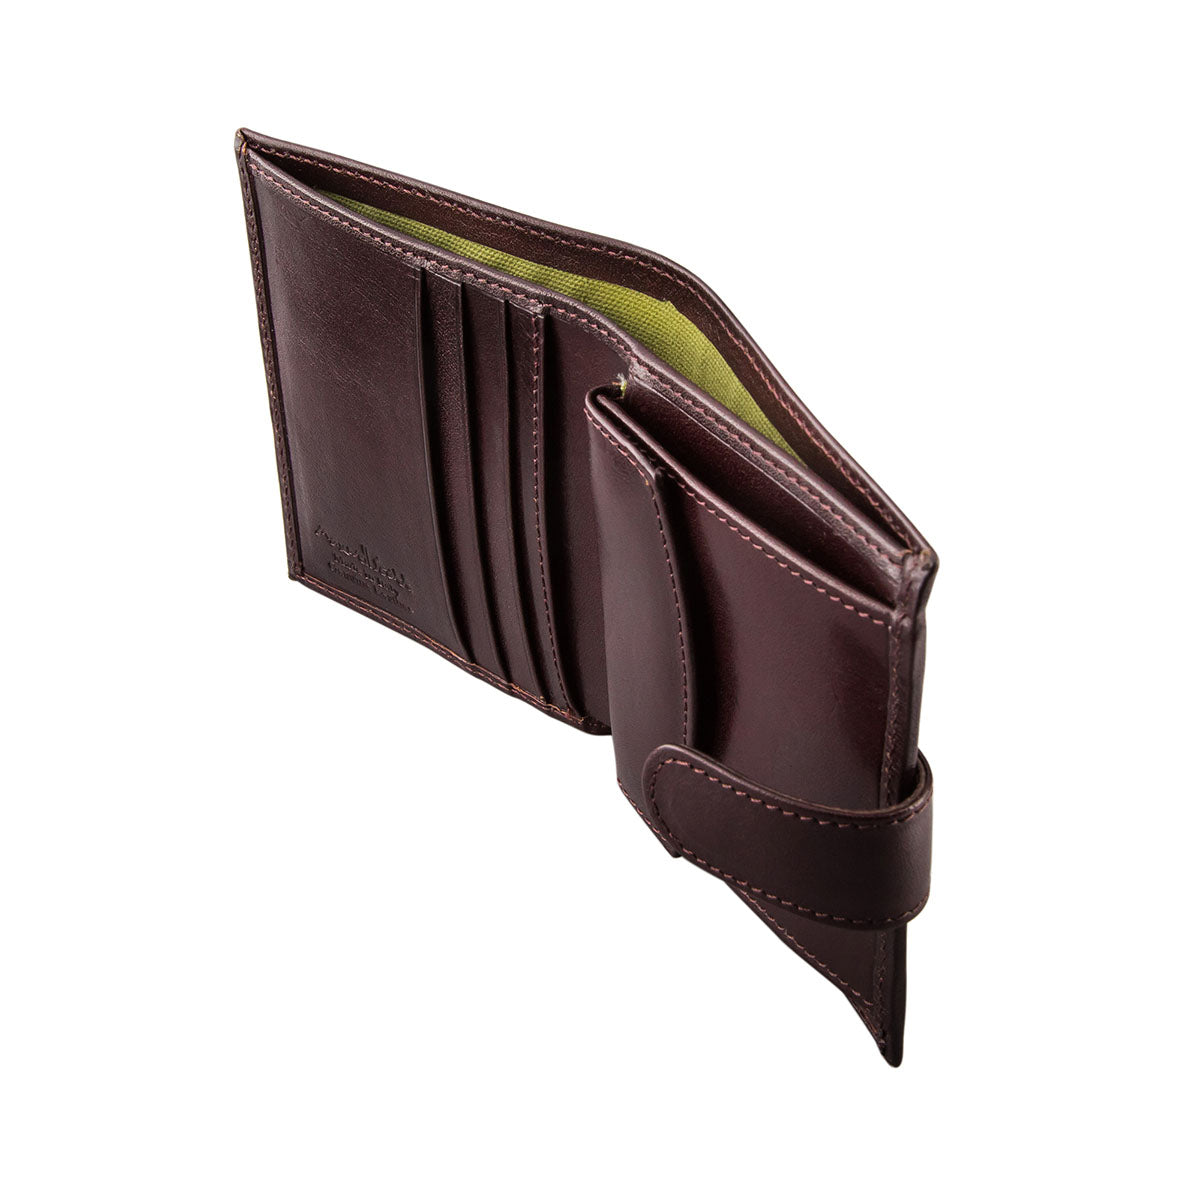 Image 3 of the 'Pietre' Brown Veg-Tanned Leather Compact Wallet